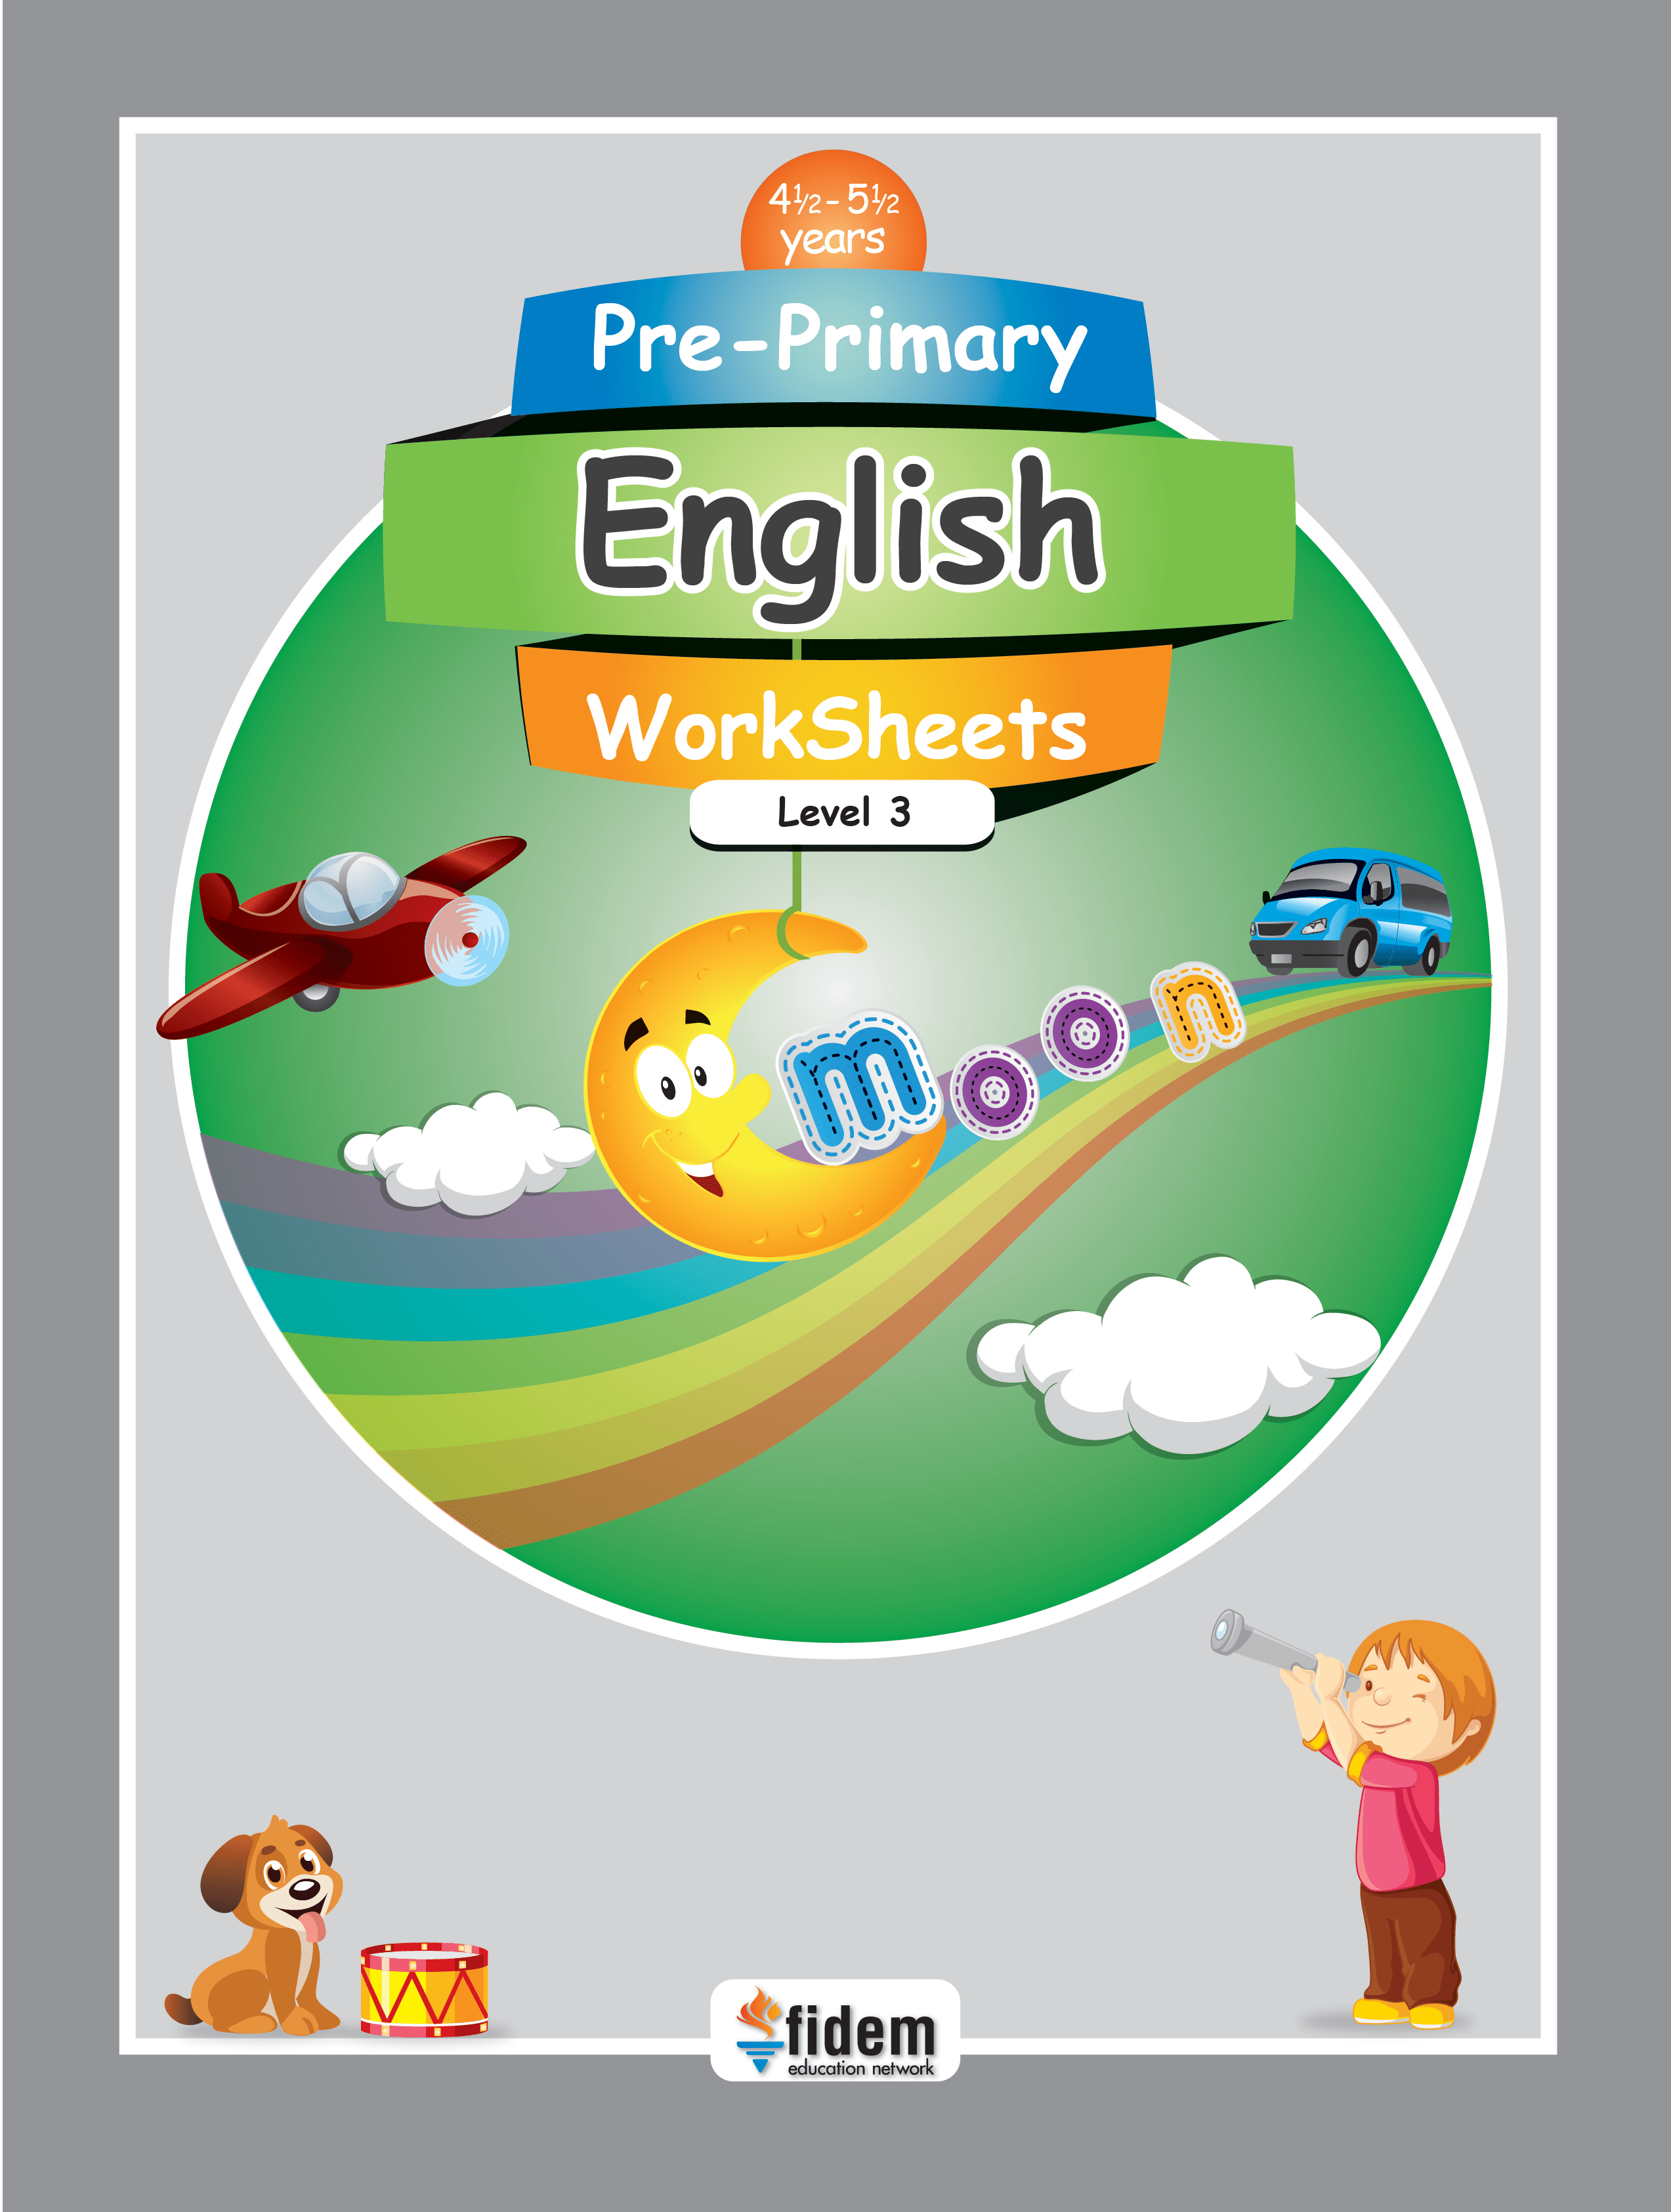 Pre Primary English Worksheets 3 Fidem Education Network